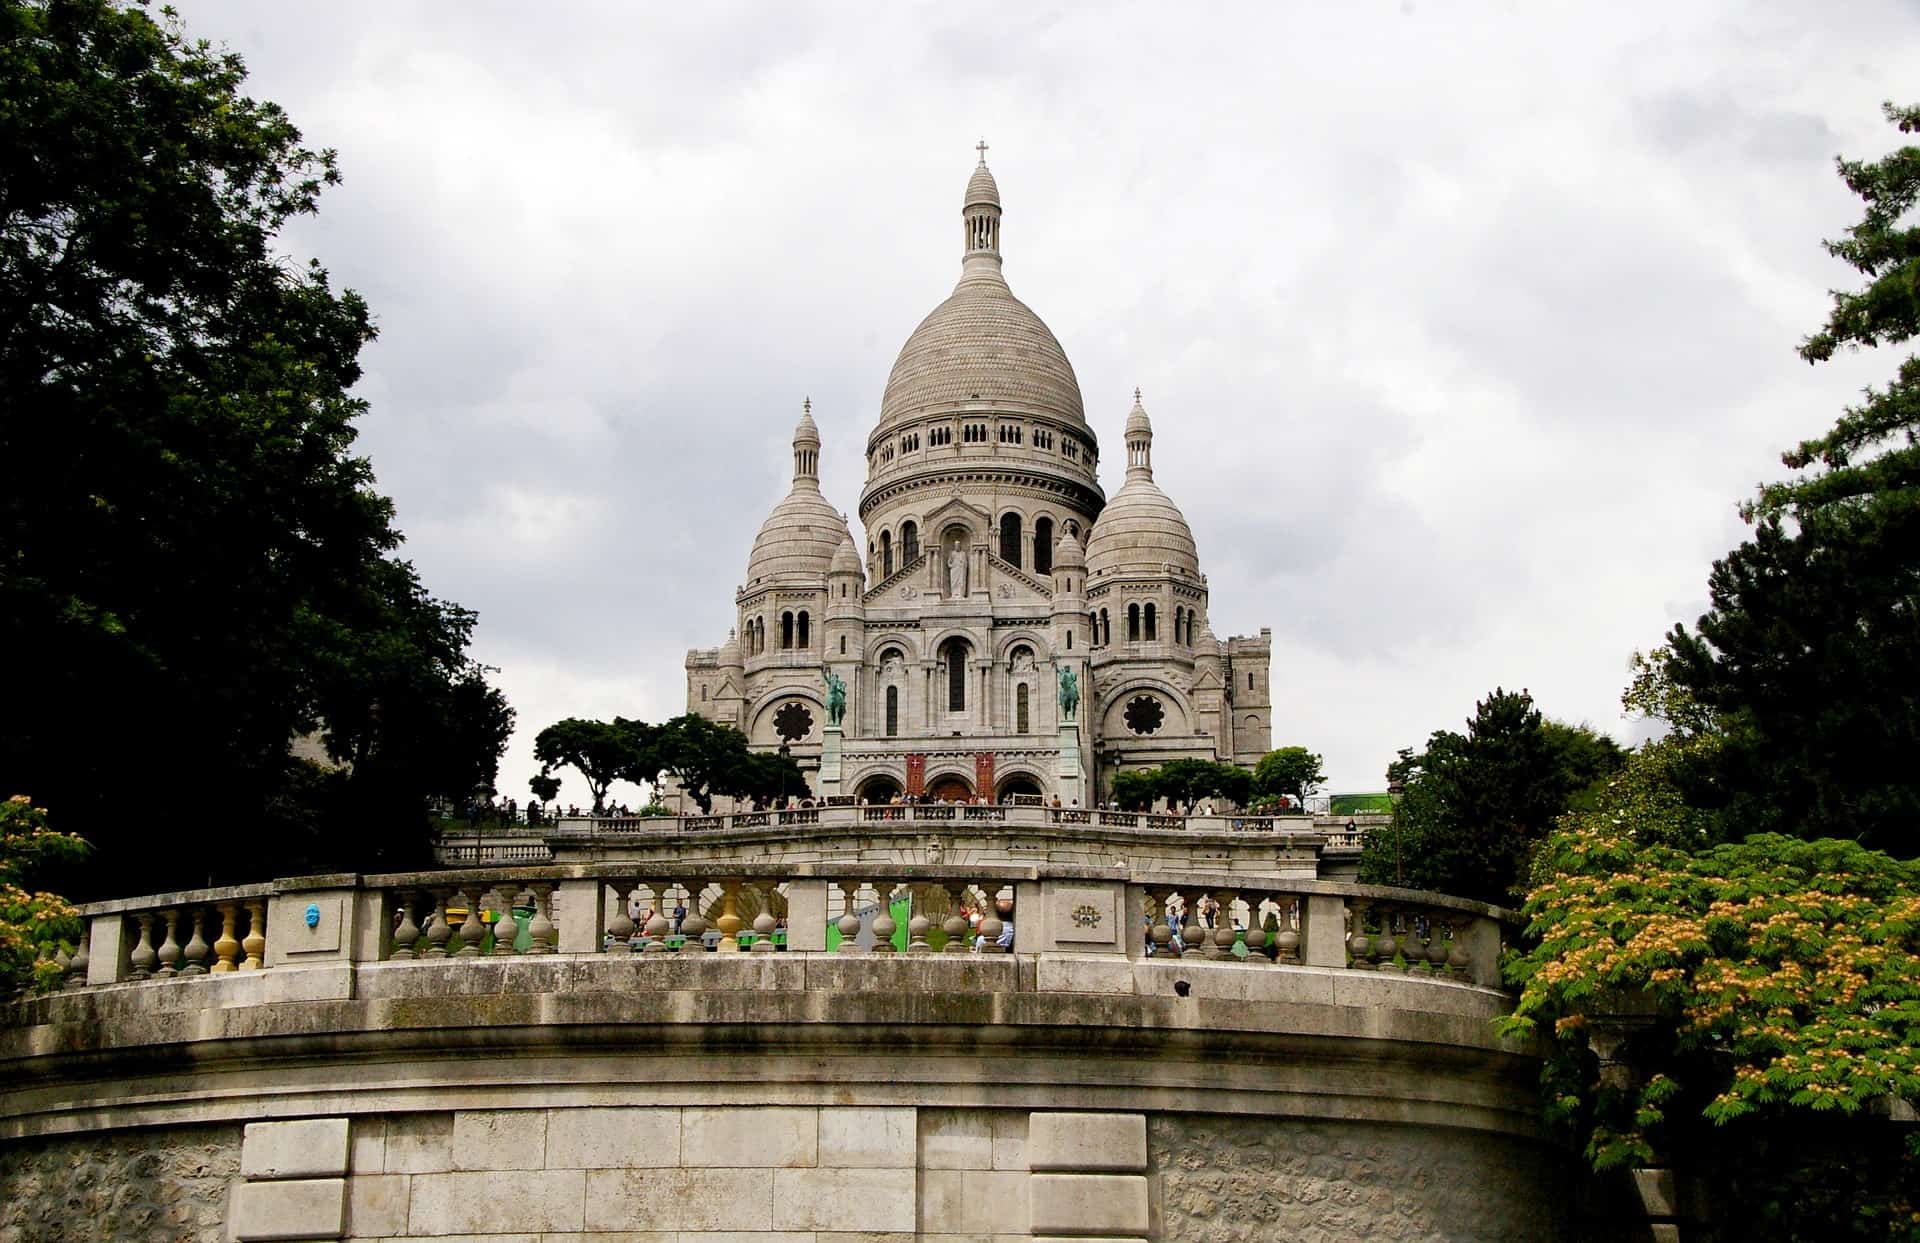 If you visit Paris in 4 days, you should not miss Montmartre and the Basilica de Sacre Coeur. The view from the hills is beautiful and a must see when wondering what to do in Paris in 4 days